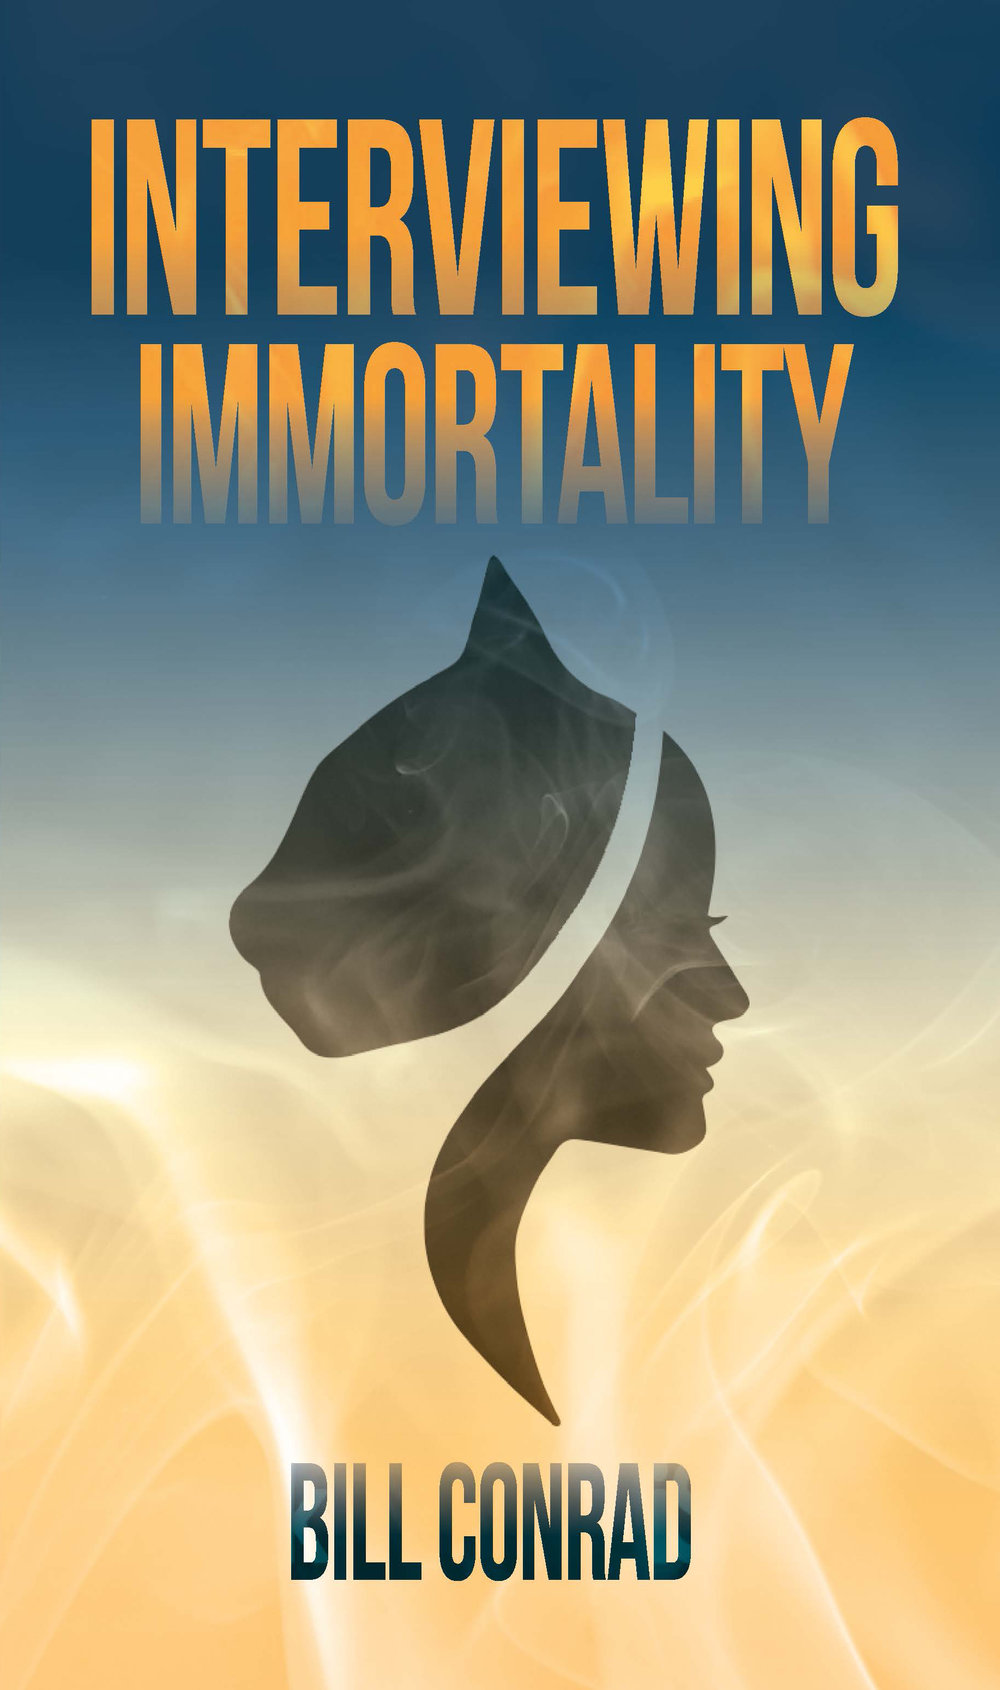 Bill Conrad, Interviewing Immortality